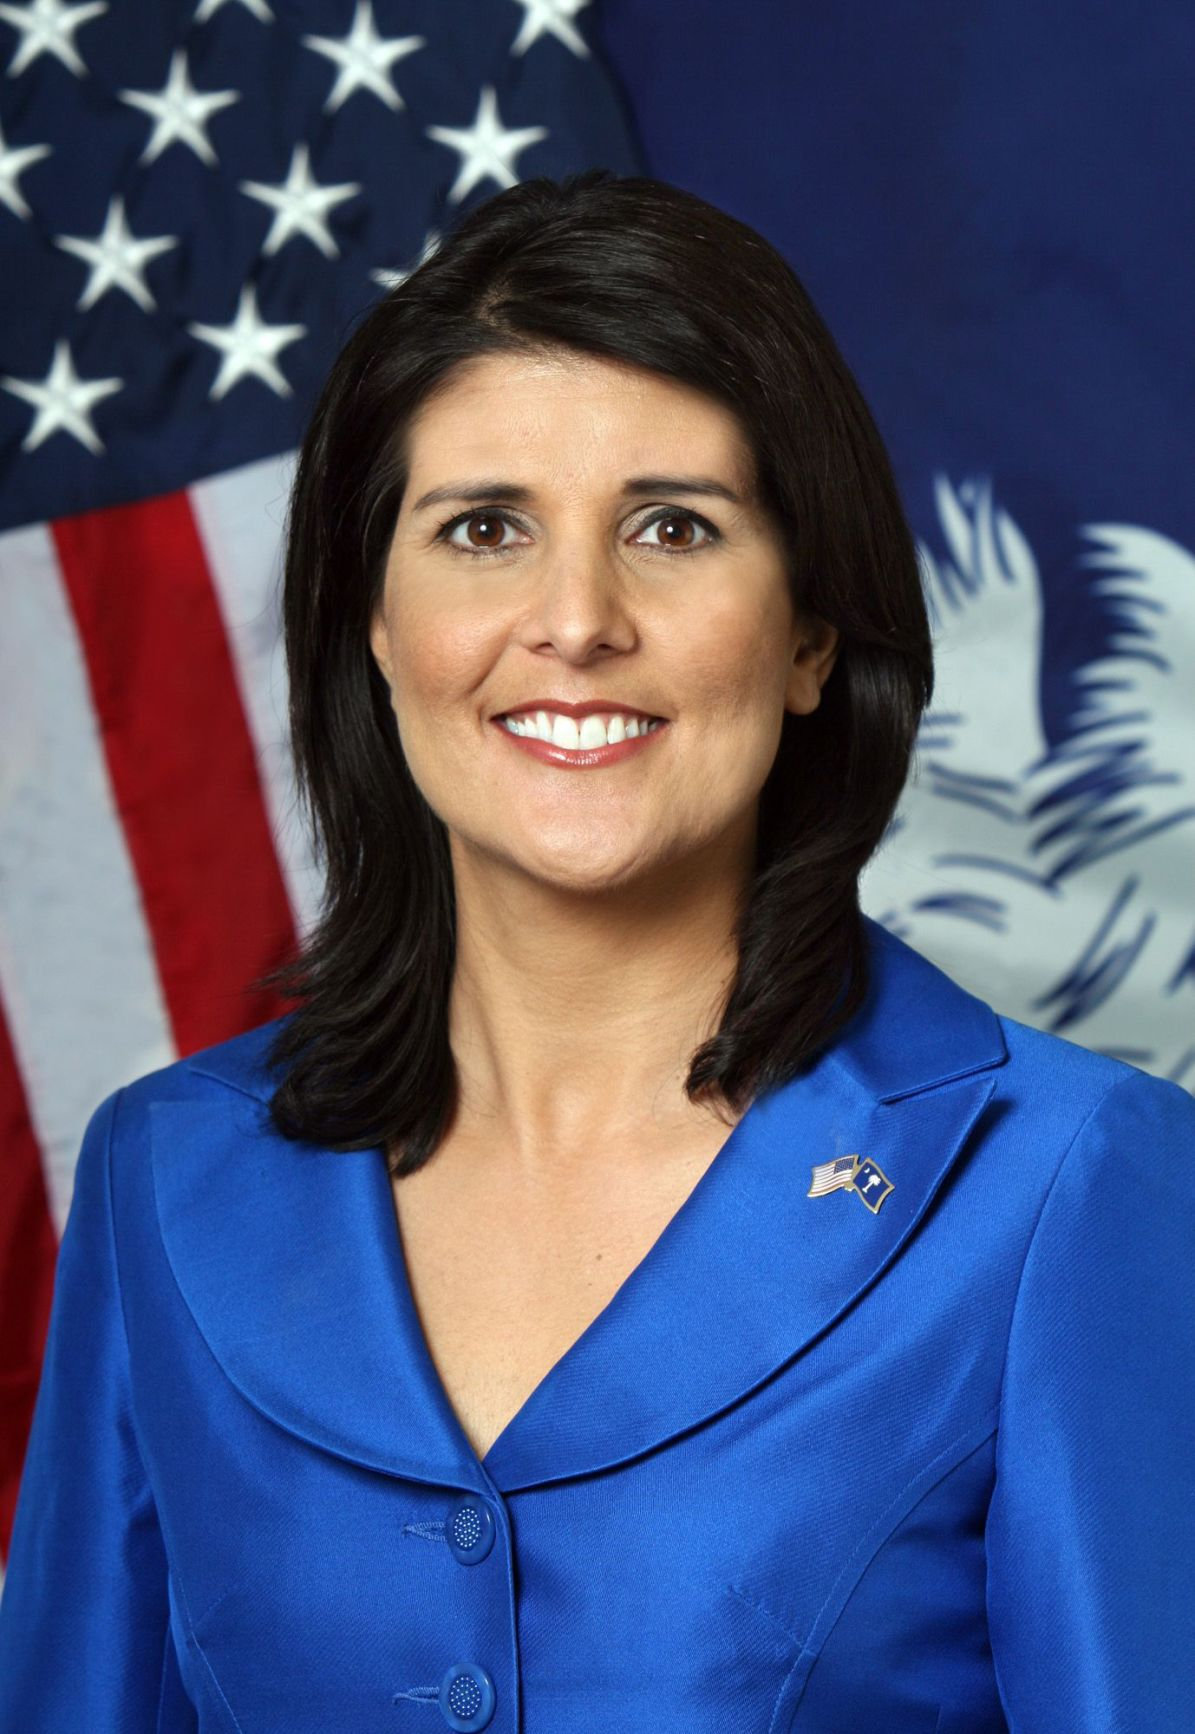 Feds assure Haley no undocumented minors are being held in S.C. Immigration rumors spurring S.C. protests